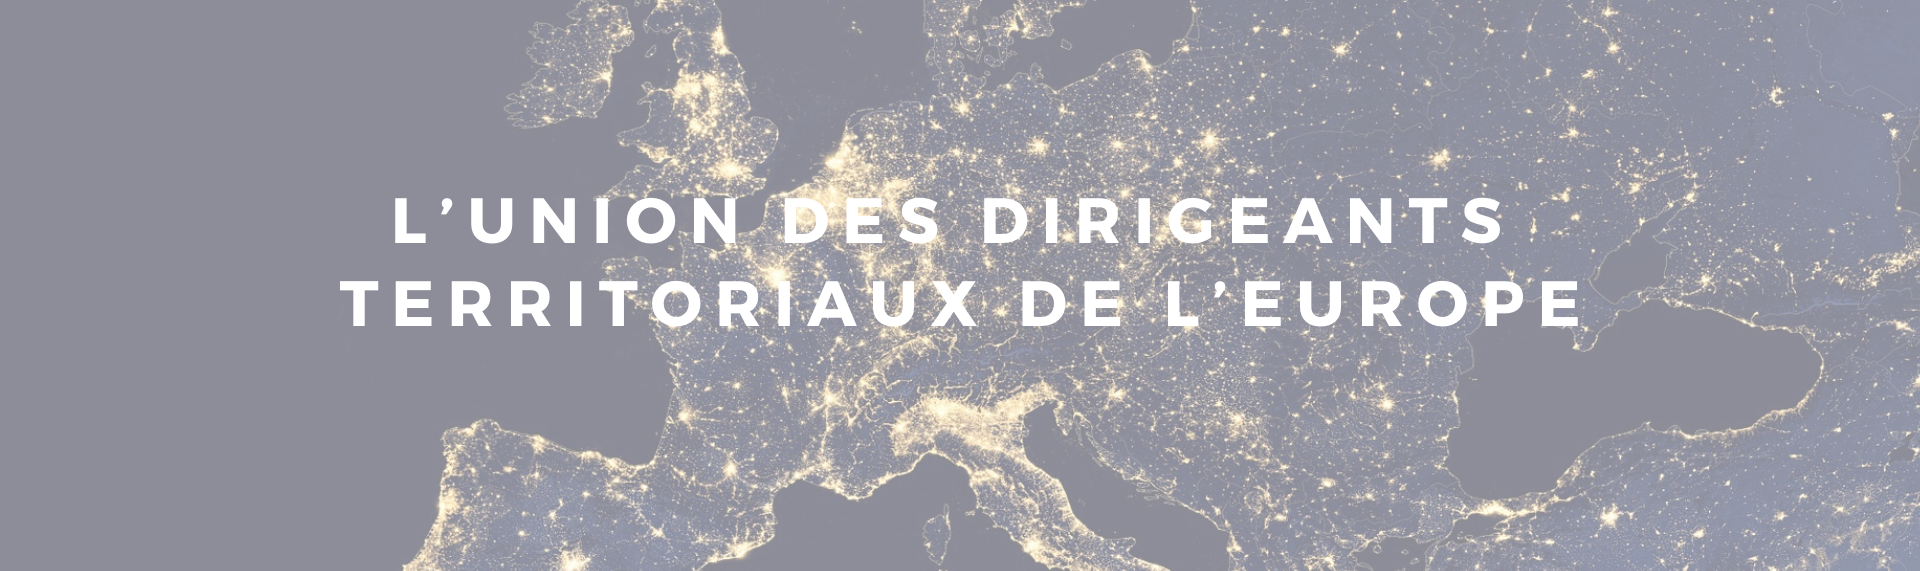 L'union des dirigeants territoriaux de l'Europe